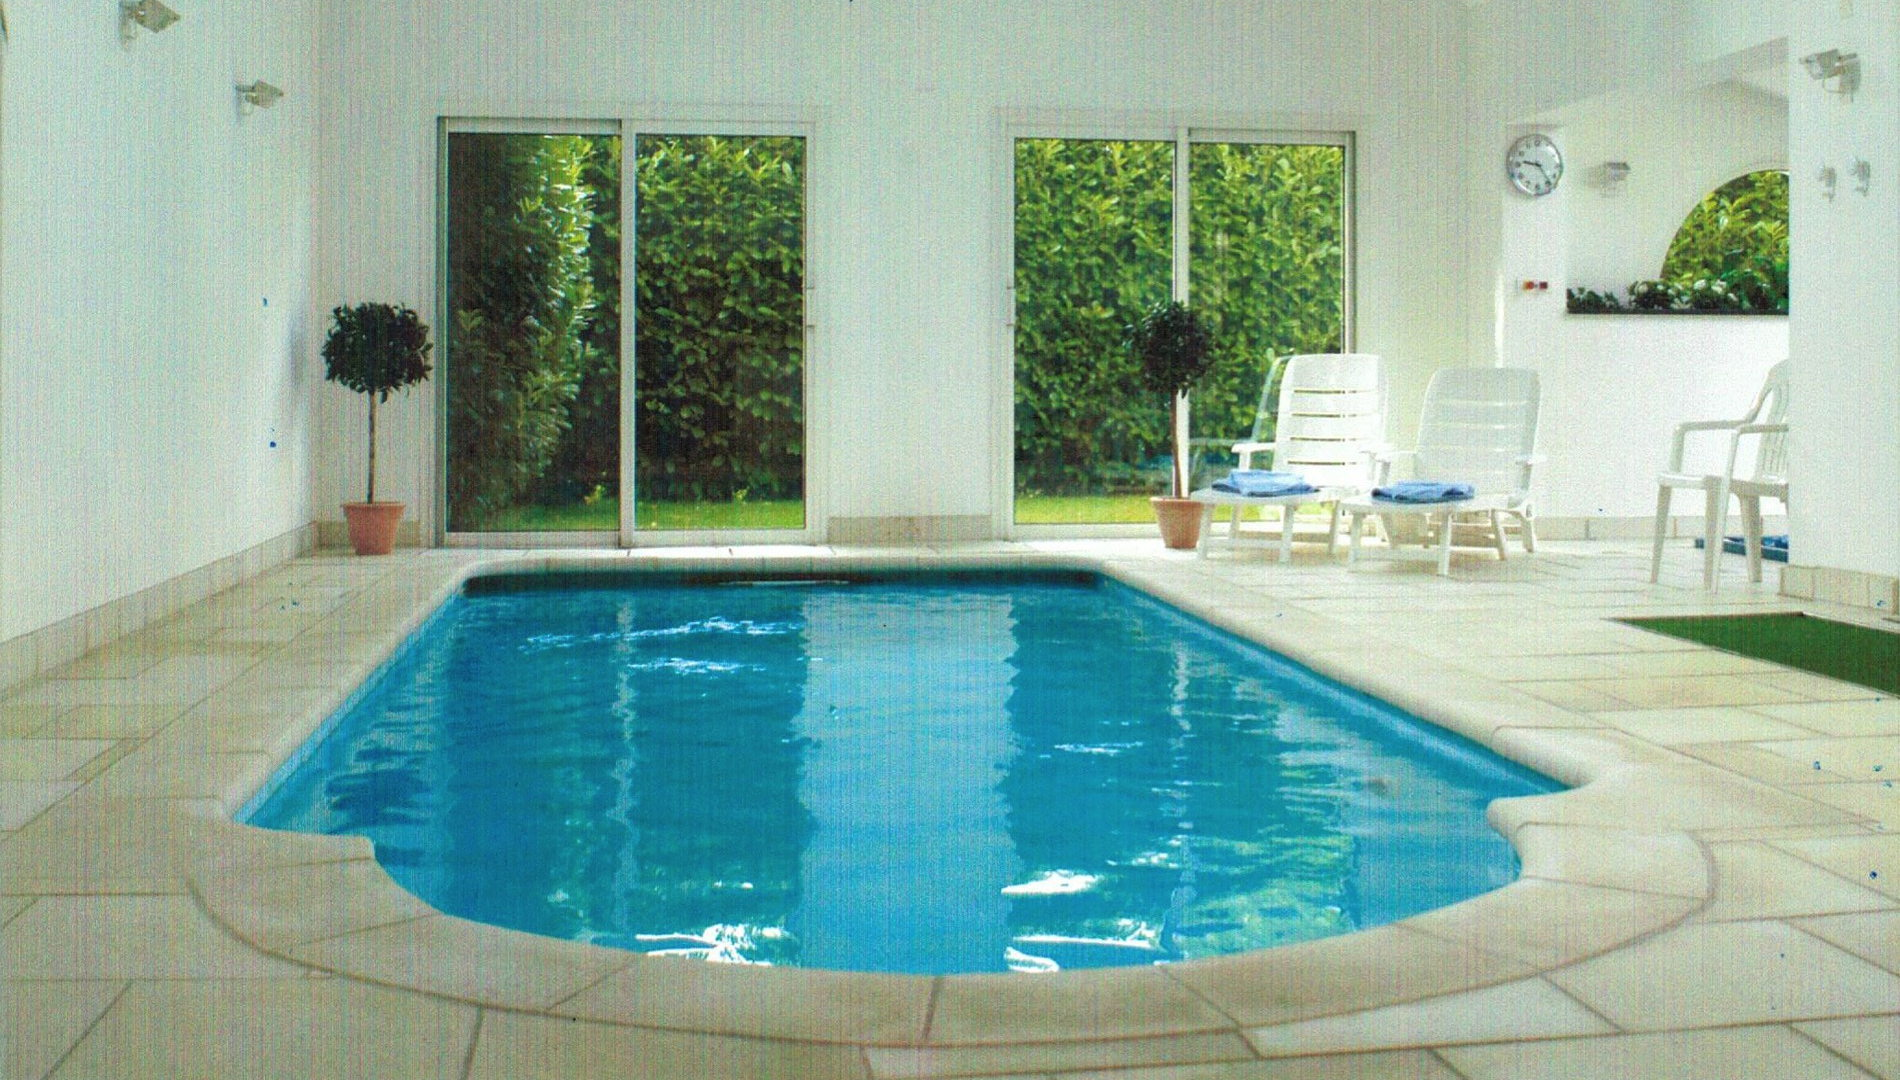 renovation_piscine_carre-bleu_5